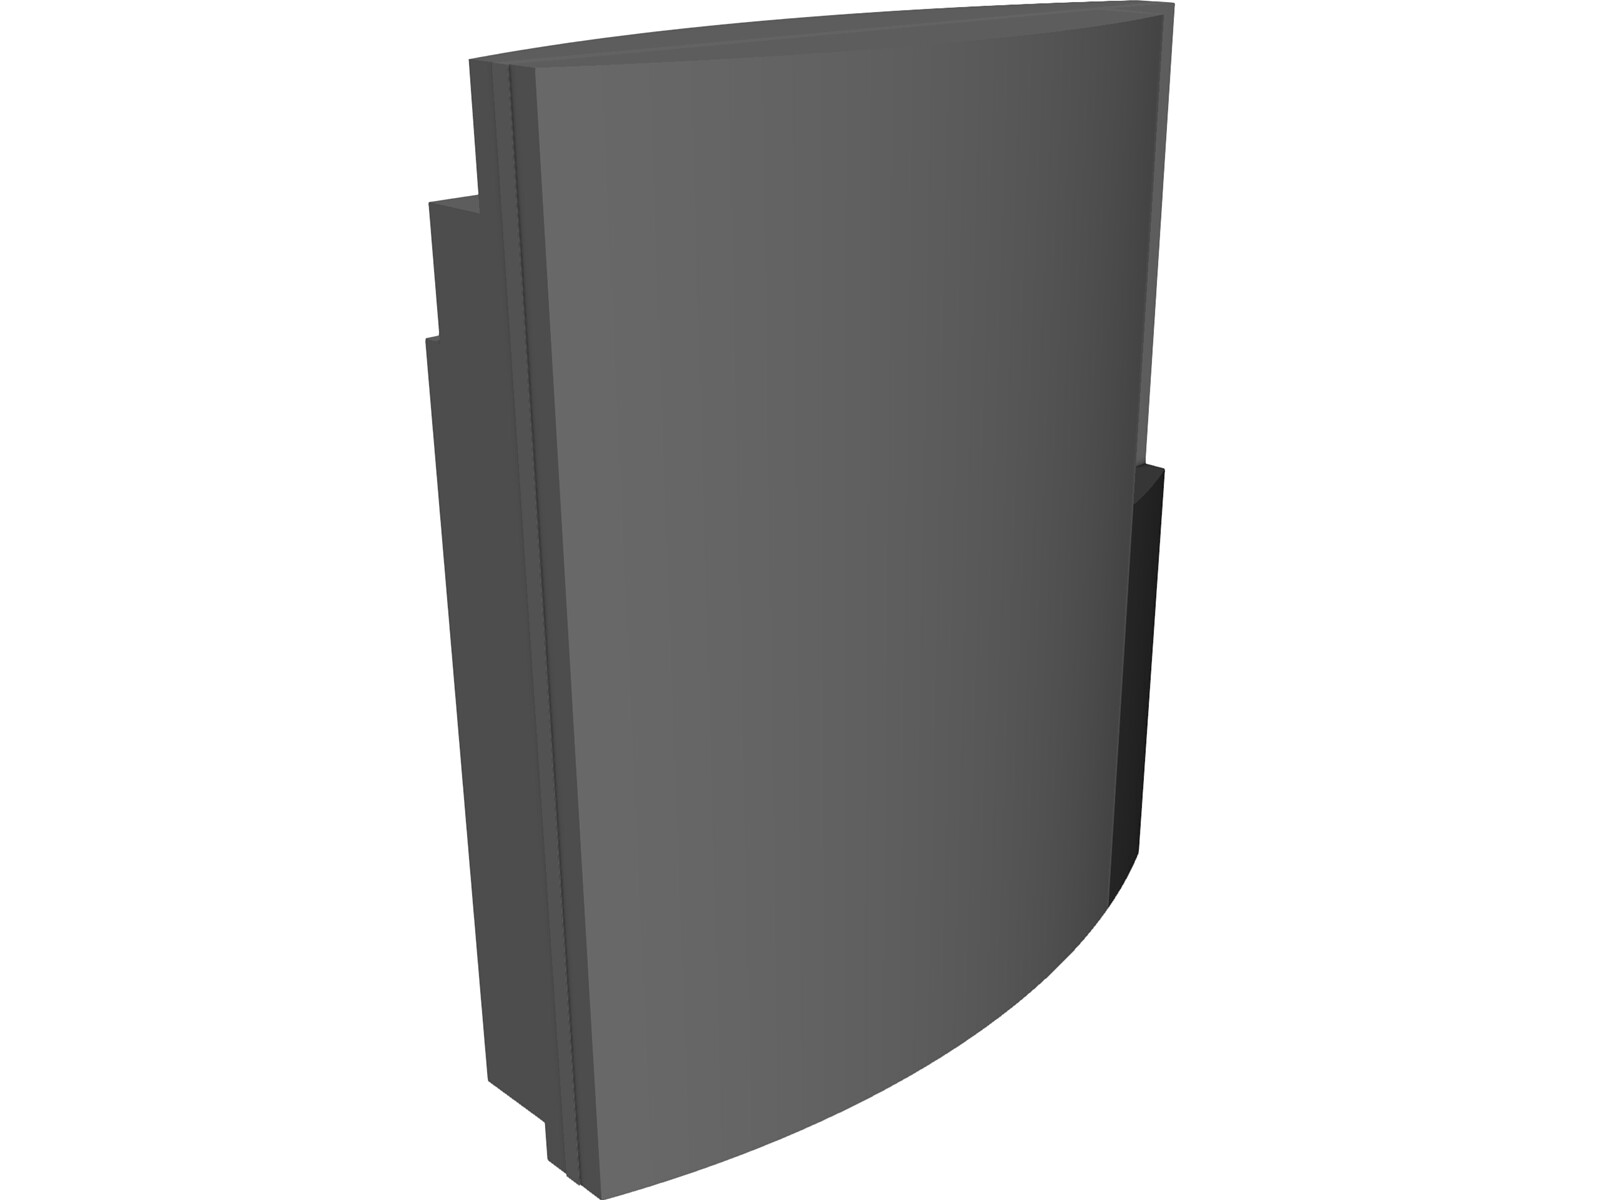 Sony Playstation 3 3D CAD Model